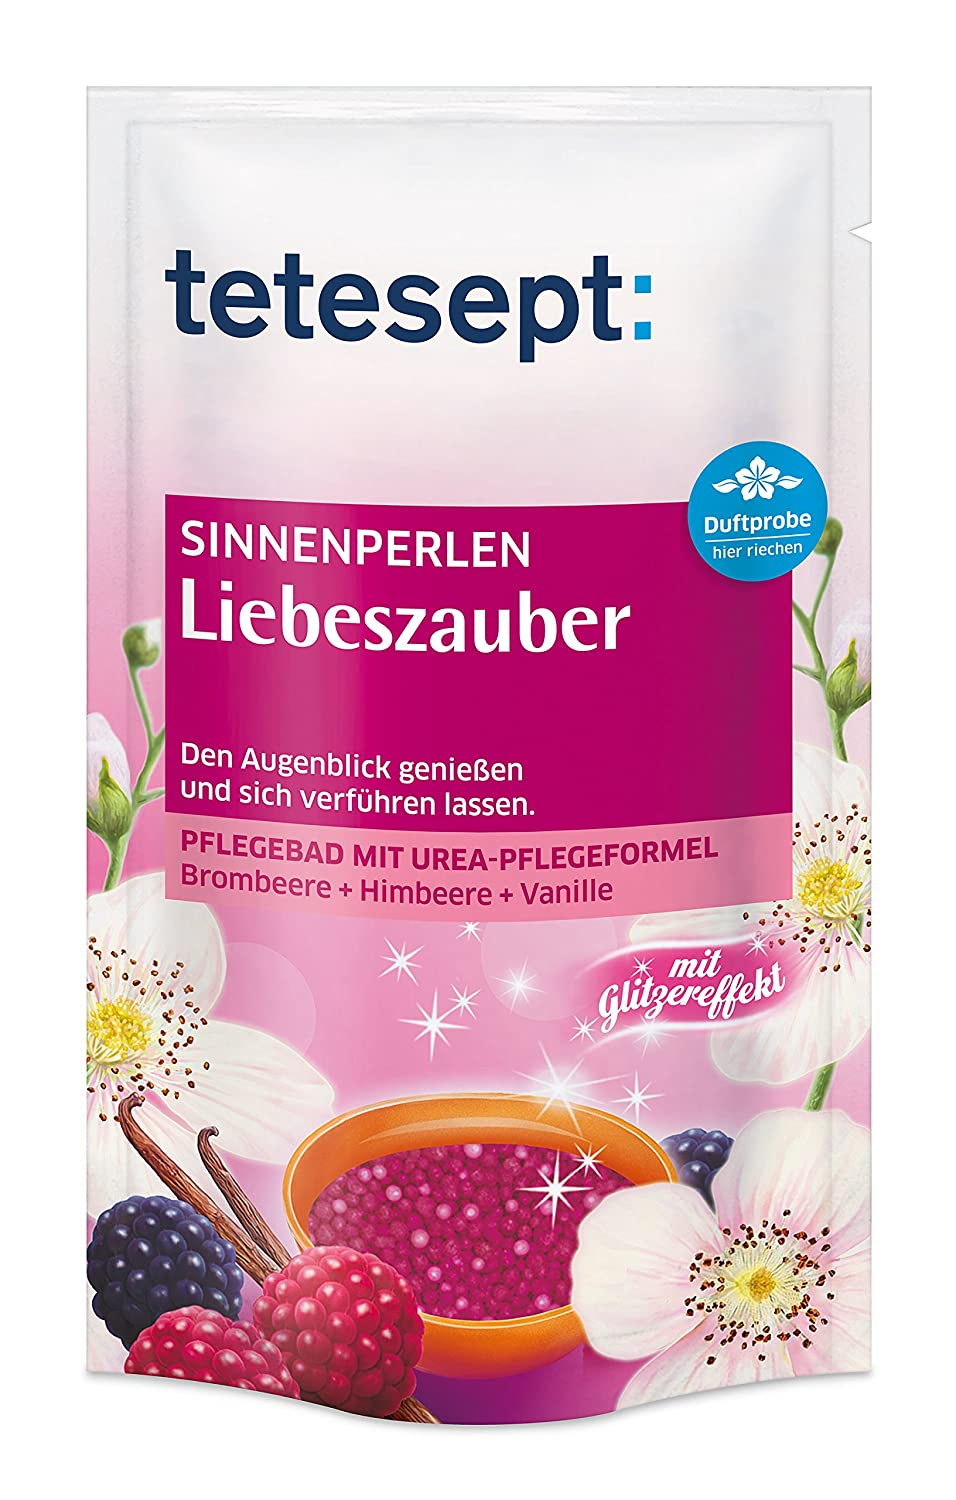 Tetesept 40375 Sinnen Perlen - Bagno Perla - Golden Magic - 6 Pack (6 x 80 gr) Merz Consumer Care GmbH (VSS) 86062